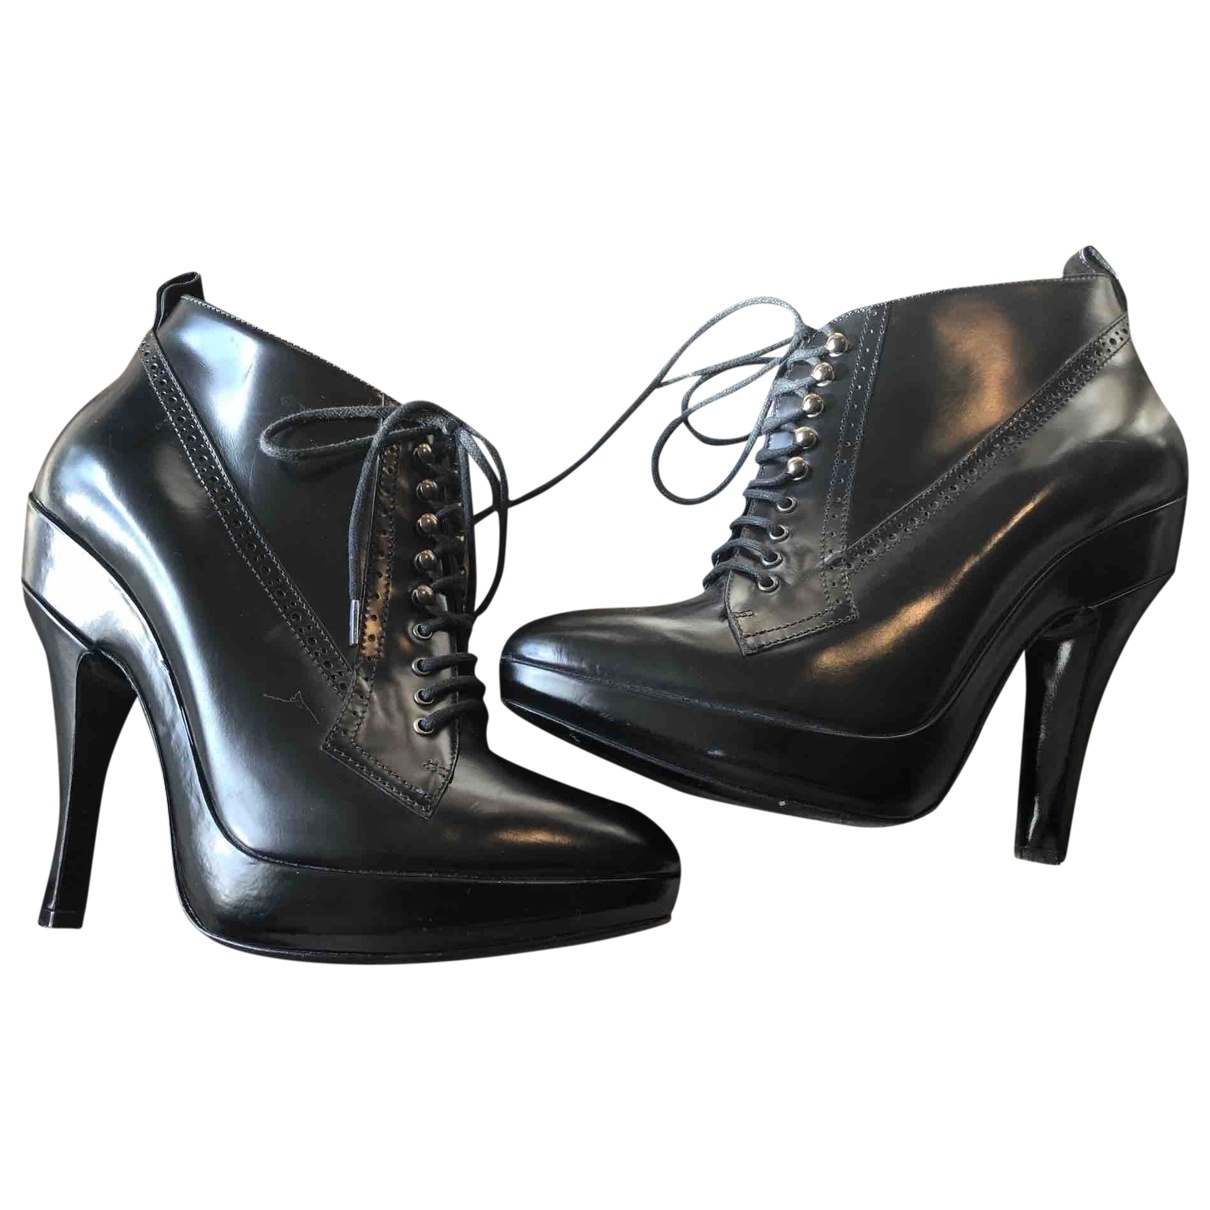 Burberry \N Black Patent leather Ankle boots for Women 38 EU